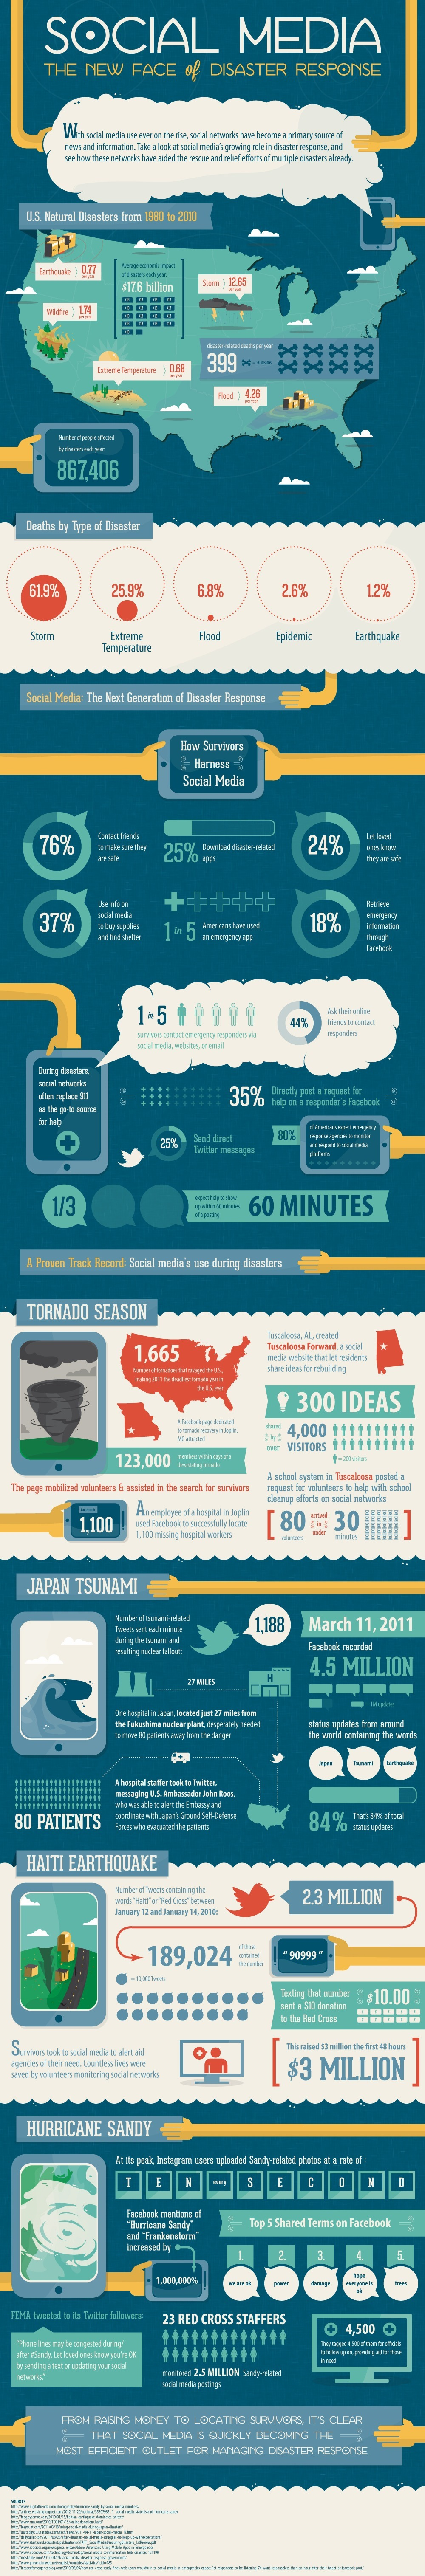 (Source: Social media impact on disaster response)